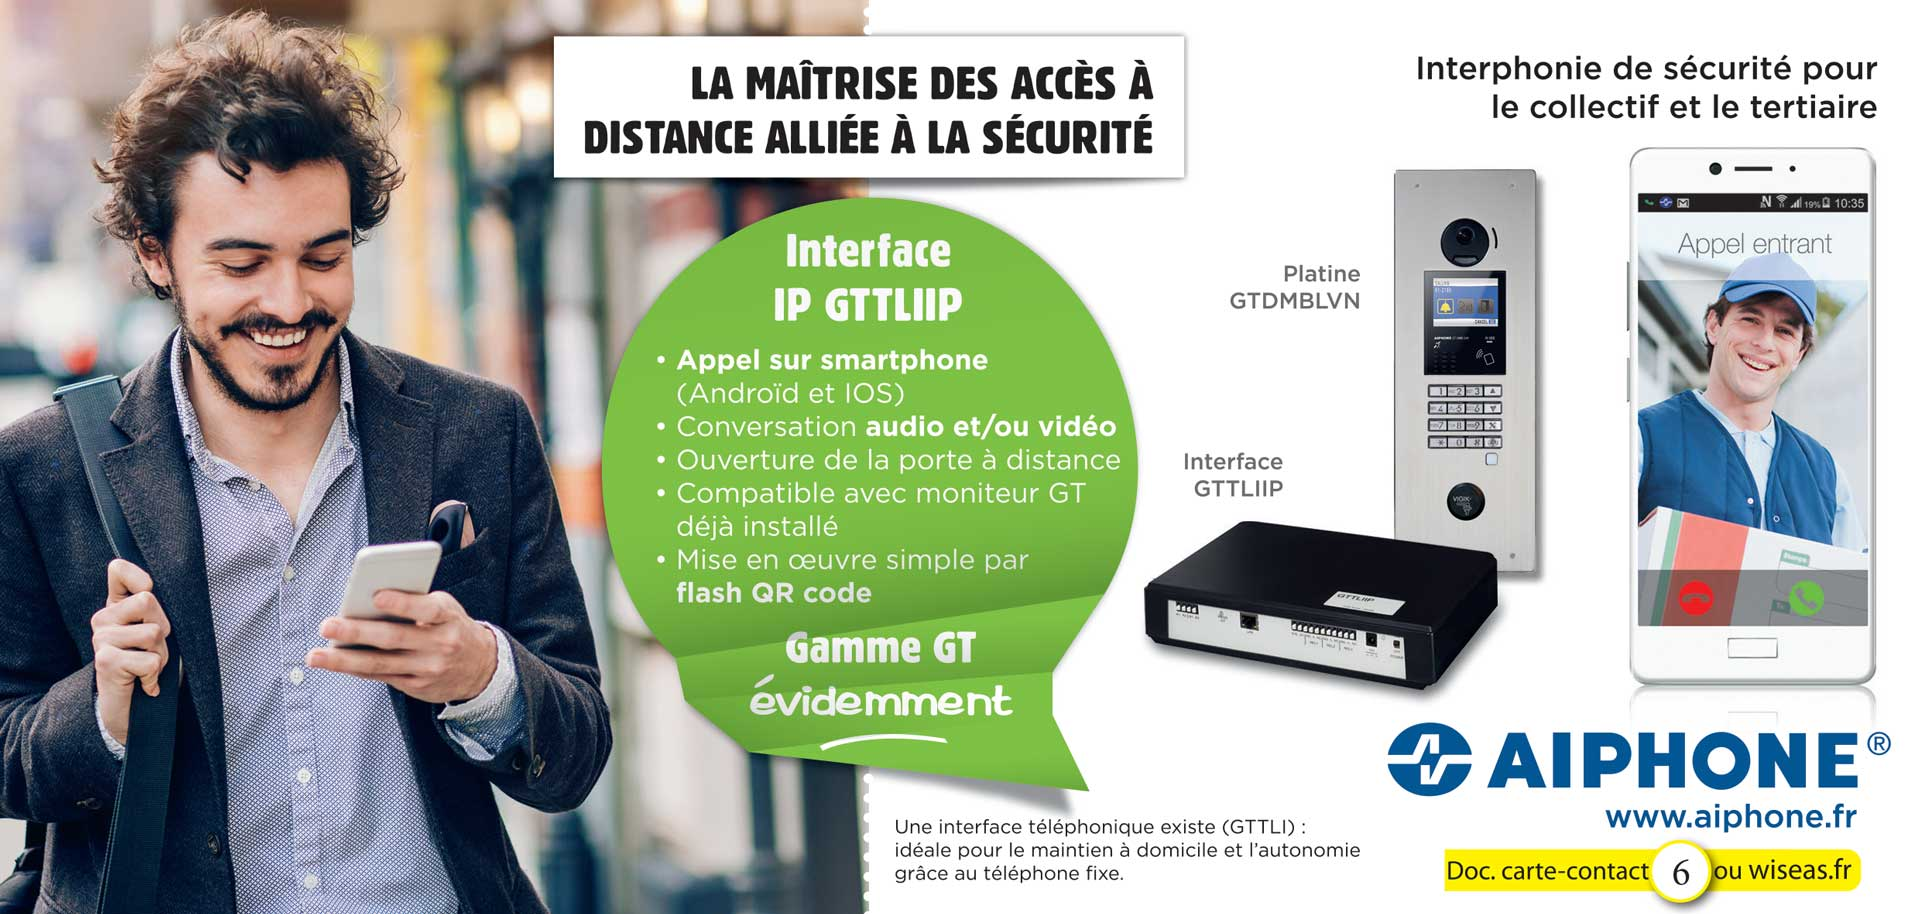 Interface IP GTTLIIP Collectif et Tertiaire.